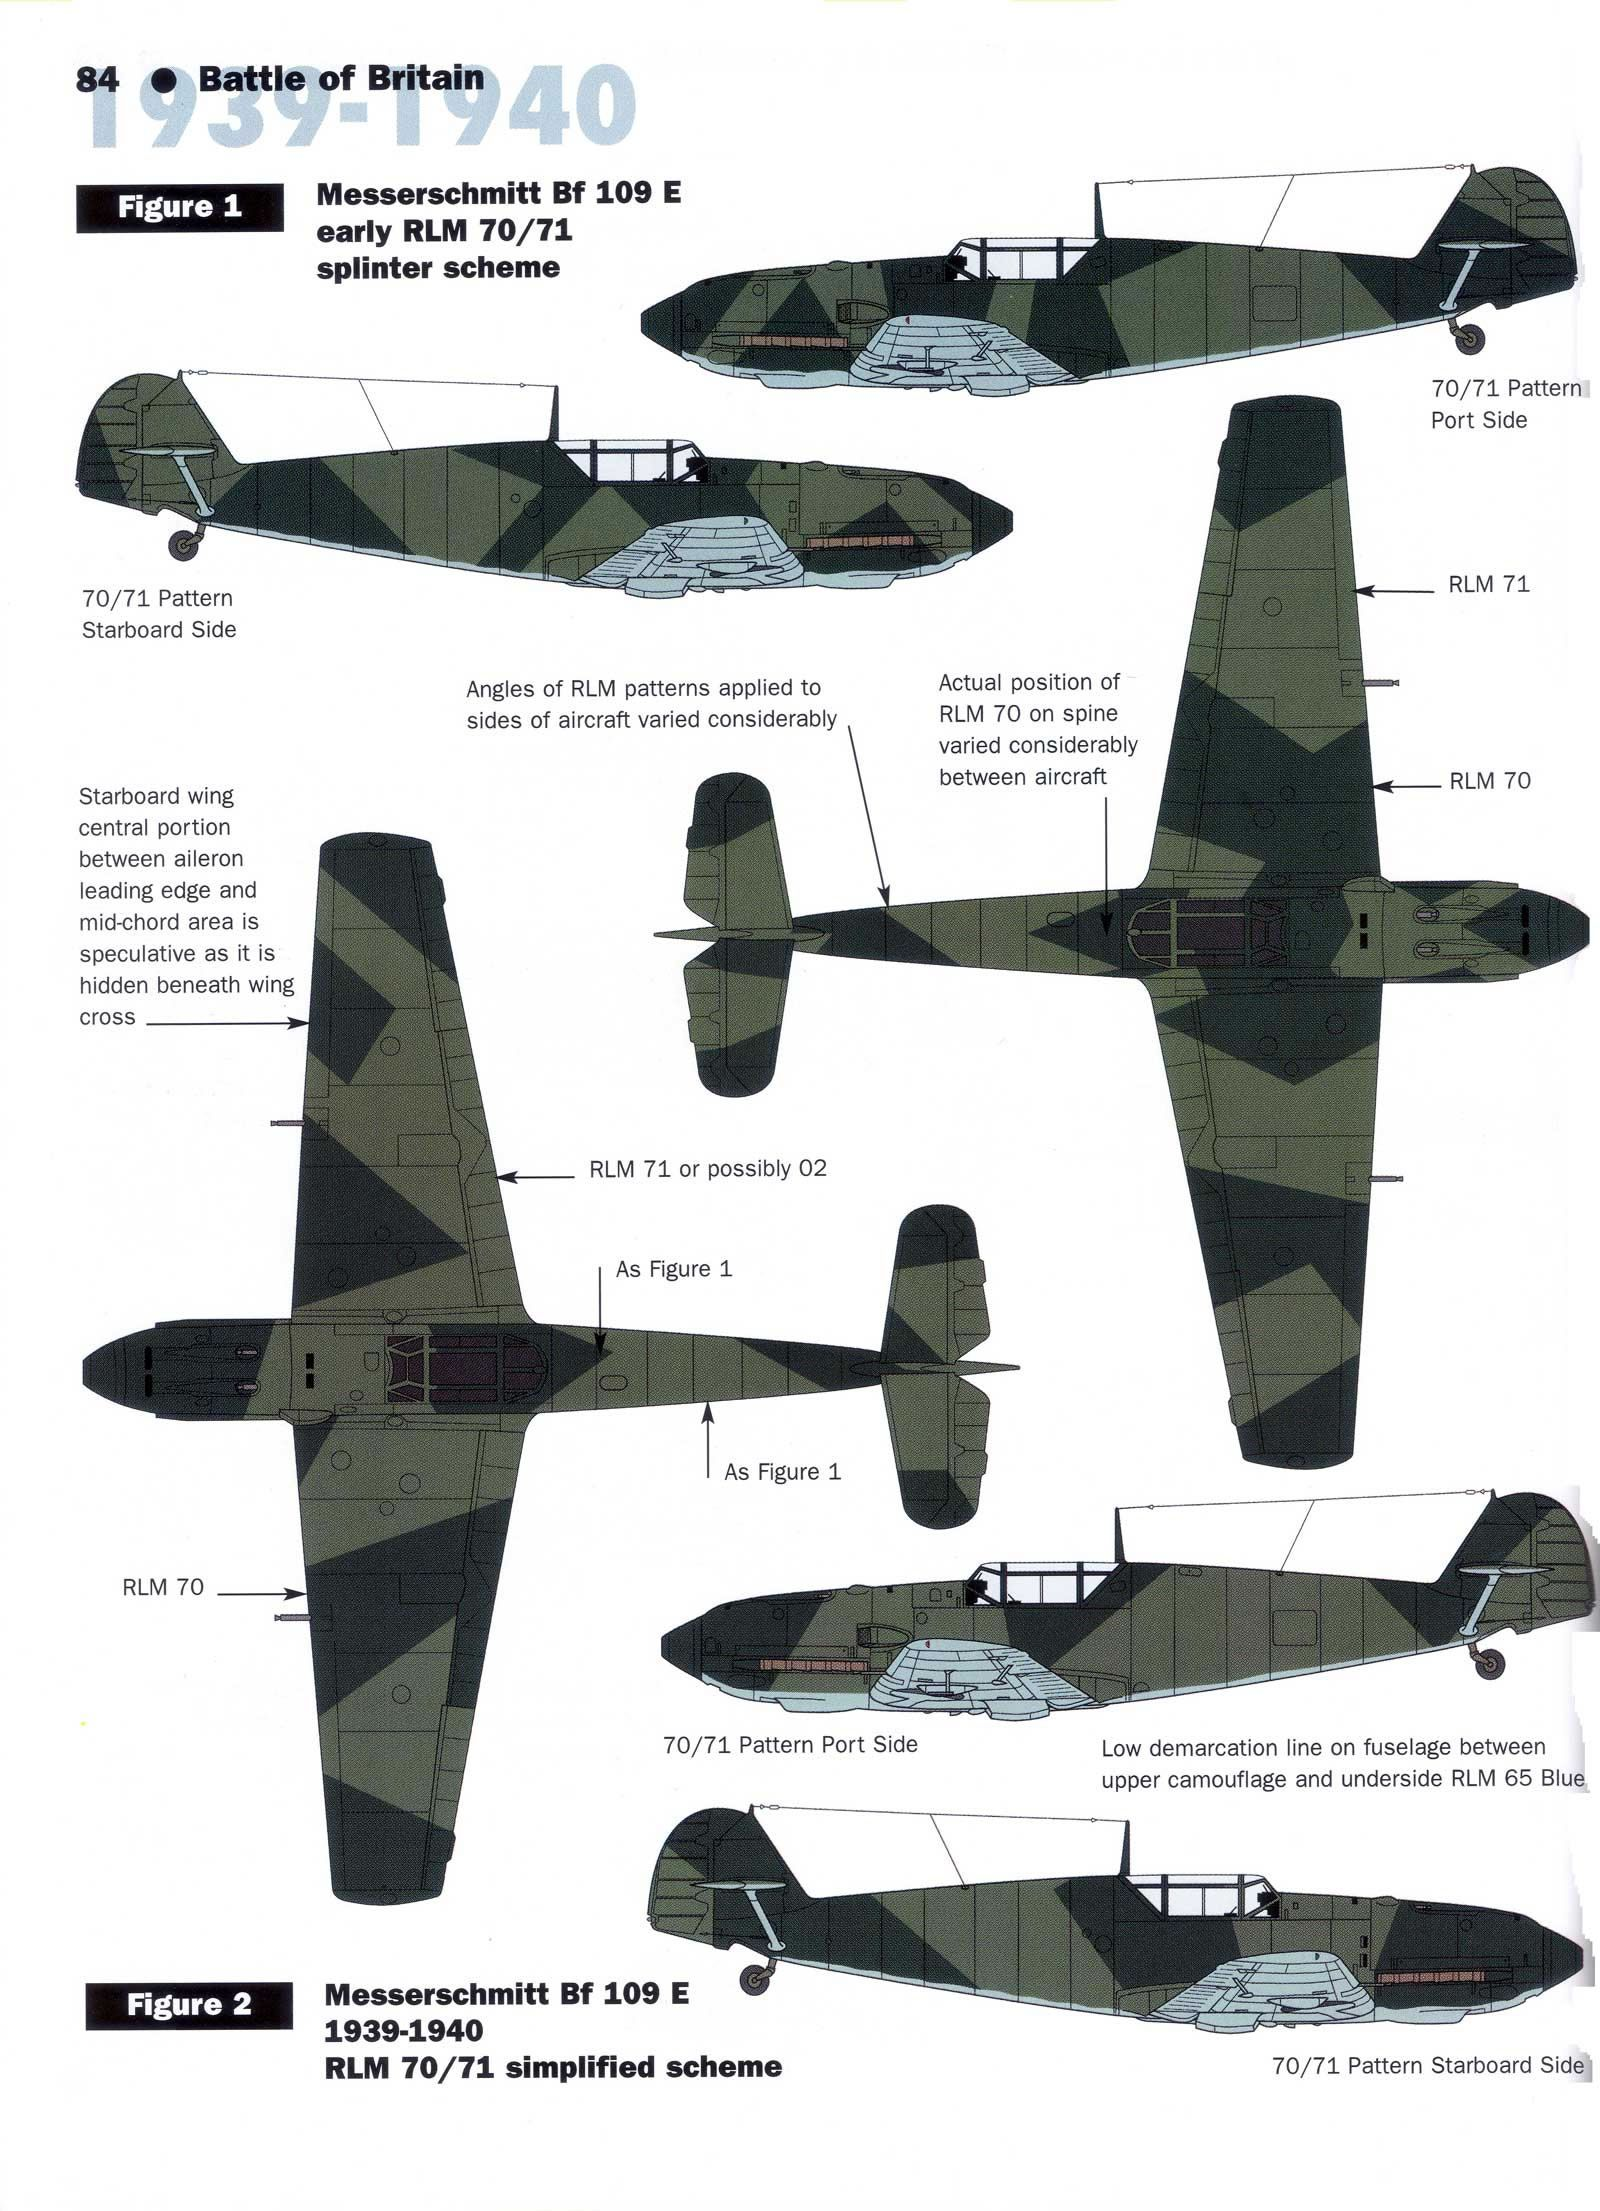 Art messerschmitt bf 109e early rlm 70 71 splinter scheme 1939 40 guide all you wanted to know about luftwaffe camouflage colors and patterns nvjuhfo Choice Image